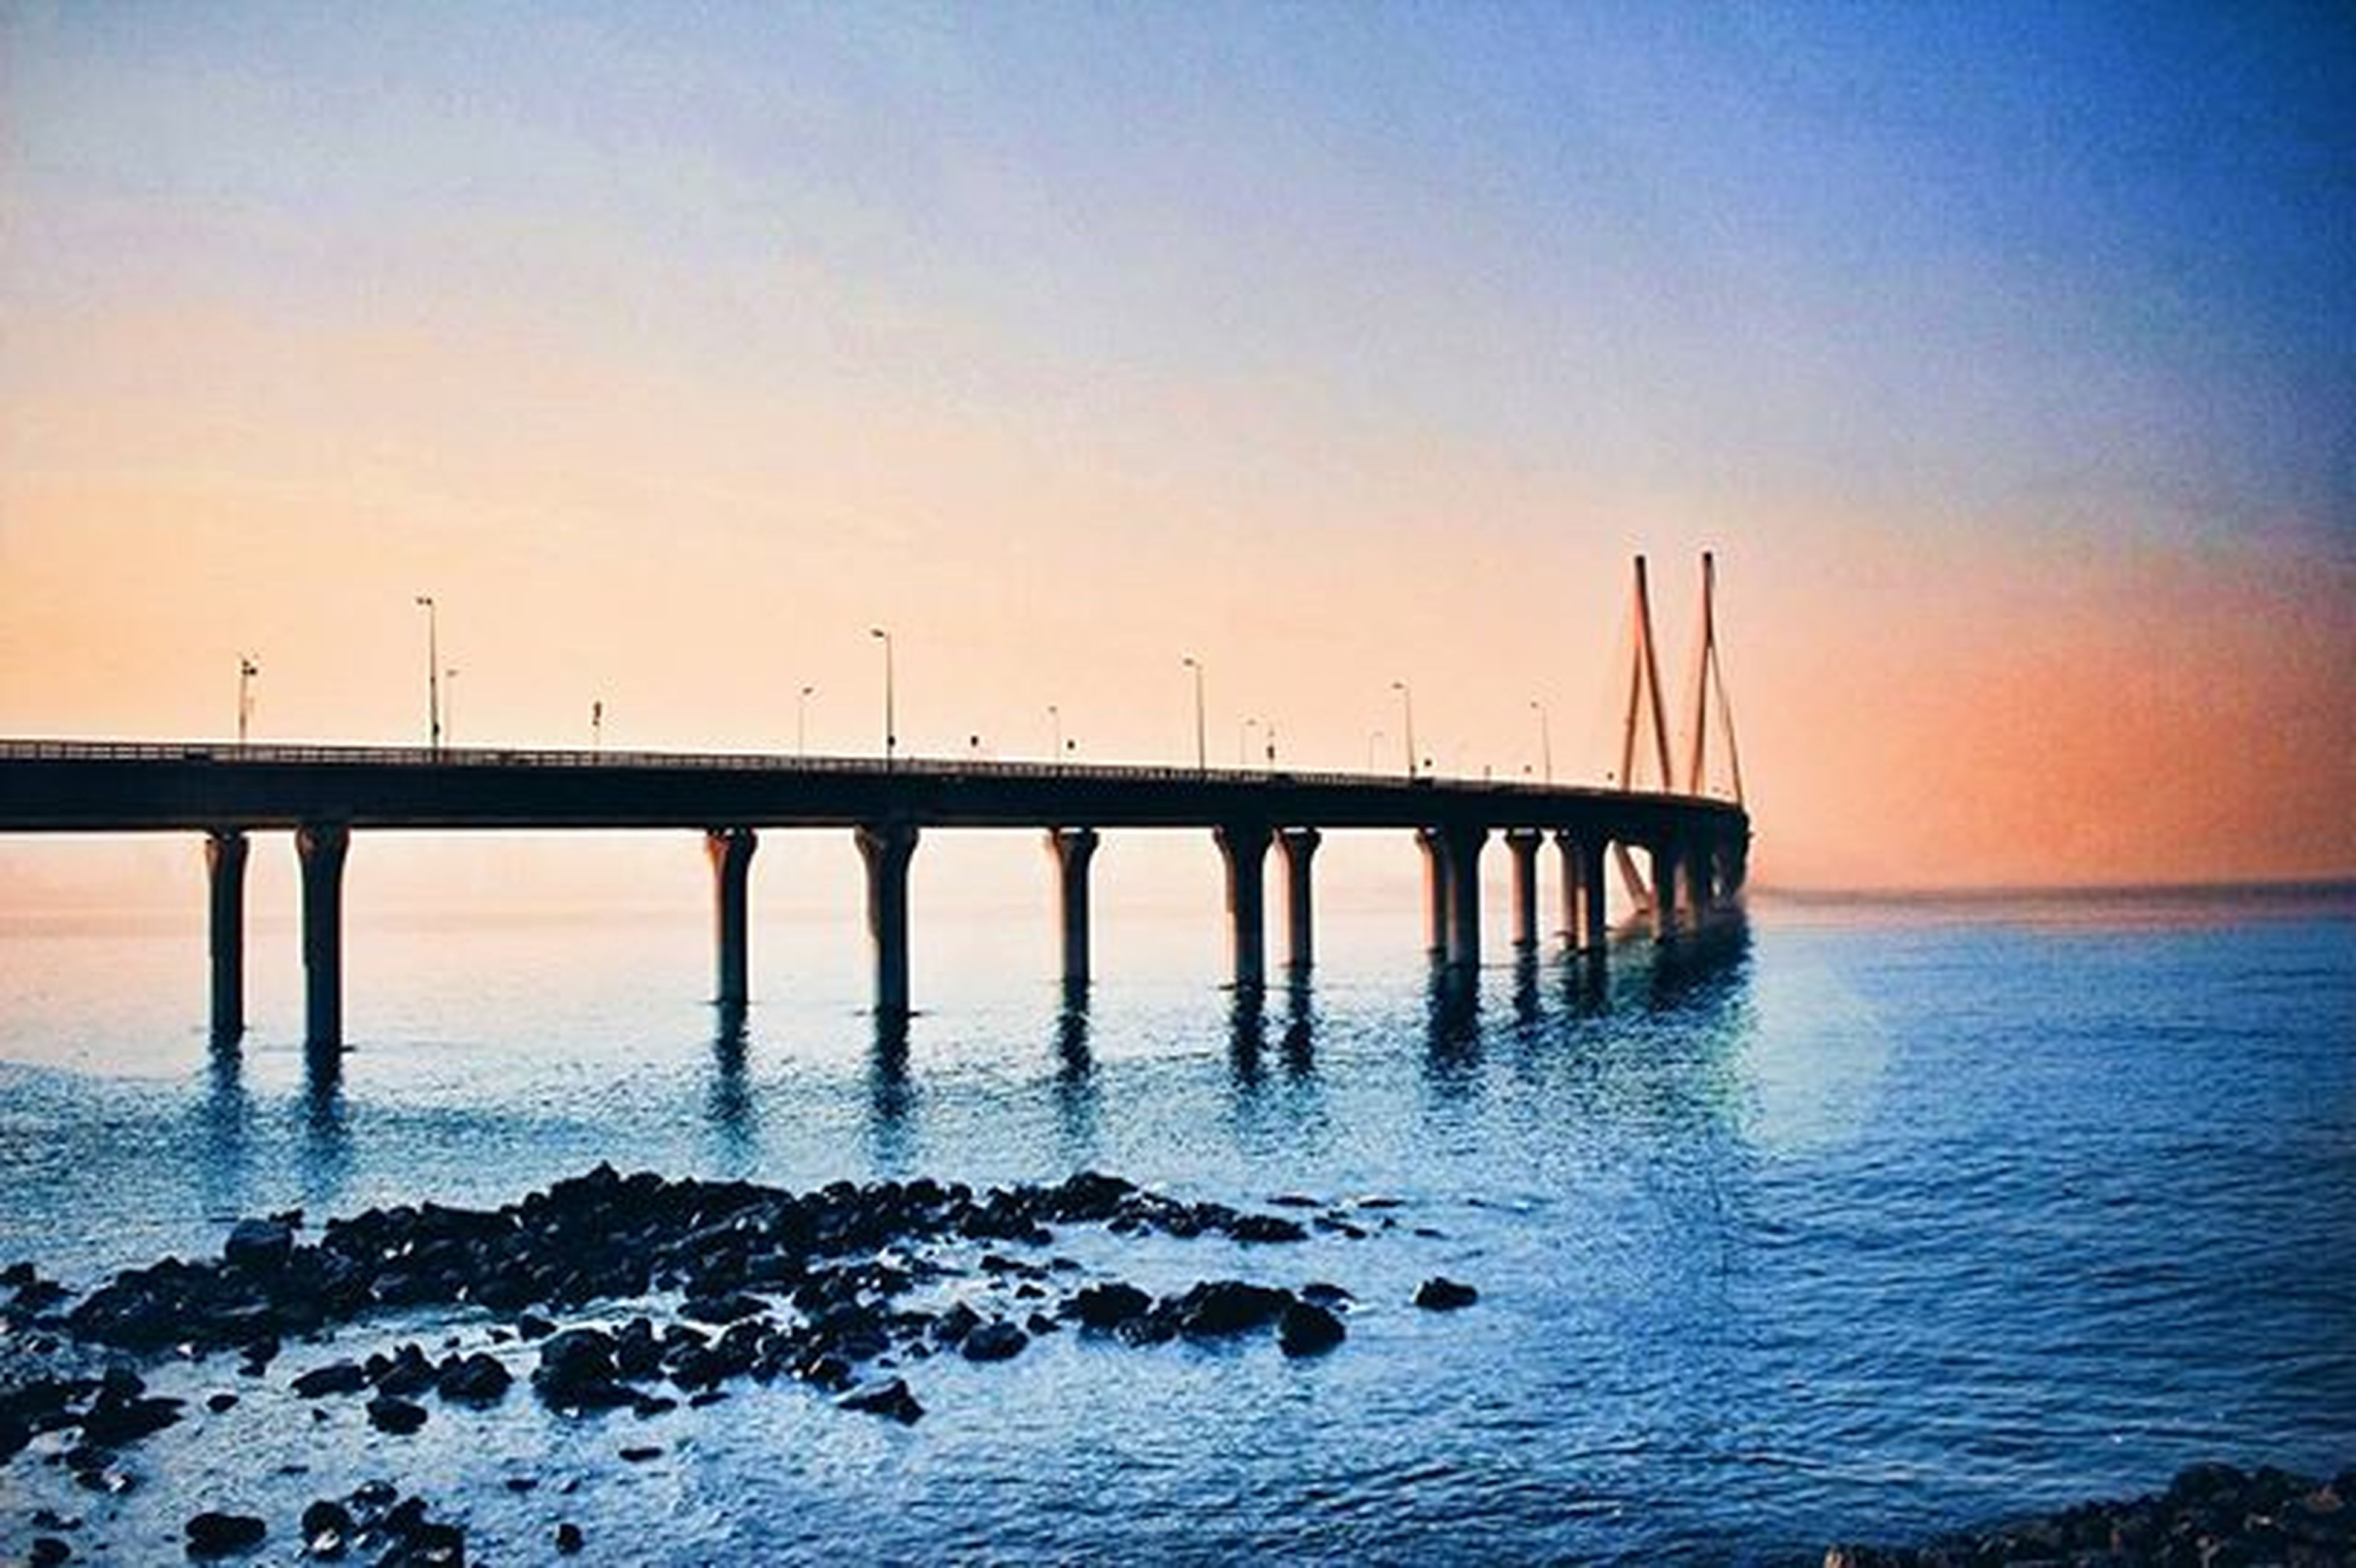 water, sea, sunset, connection, built structure, clear sky, pier, bridge - man made structure, tranquil scene, tranquility, copy space, scenics, nature, bird, beauty in nature, architecture, bridge, horizon over water, sky, idyllic